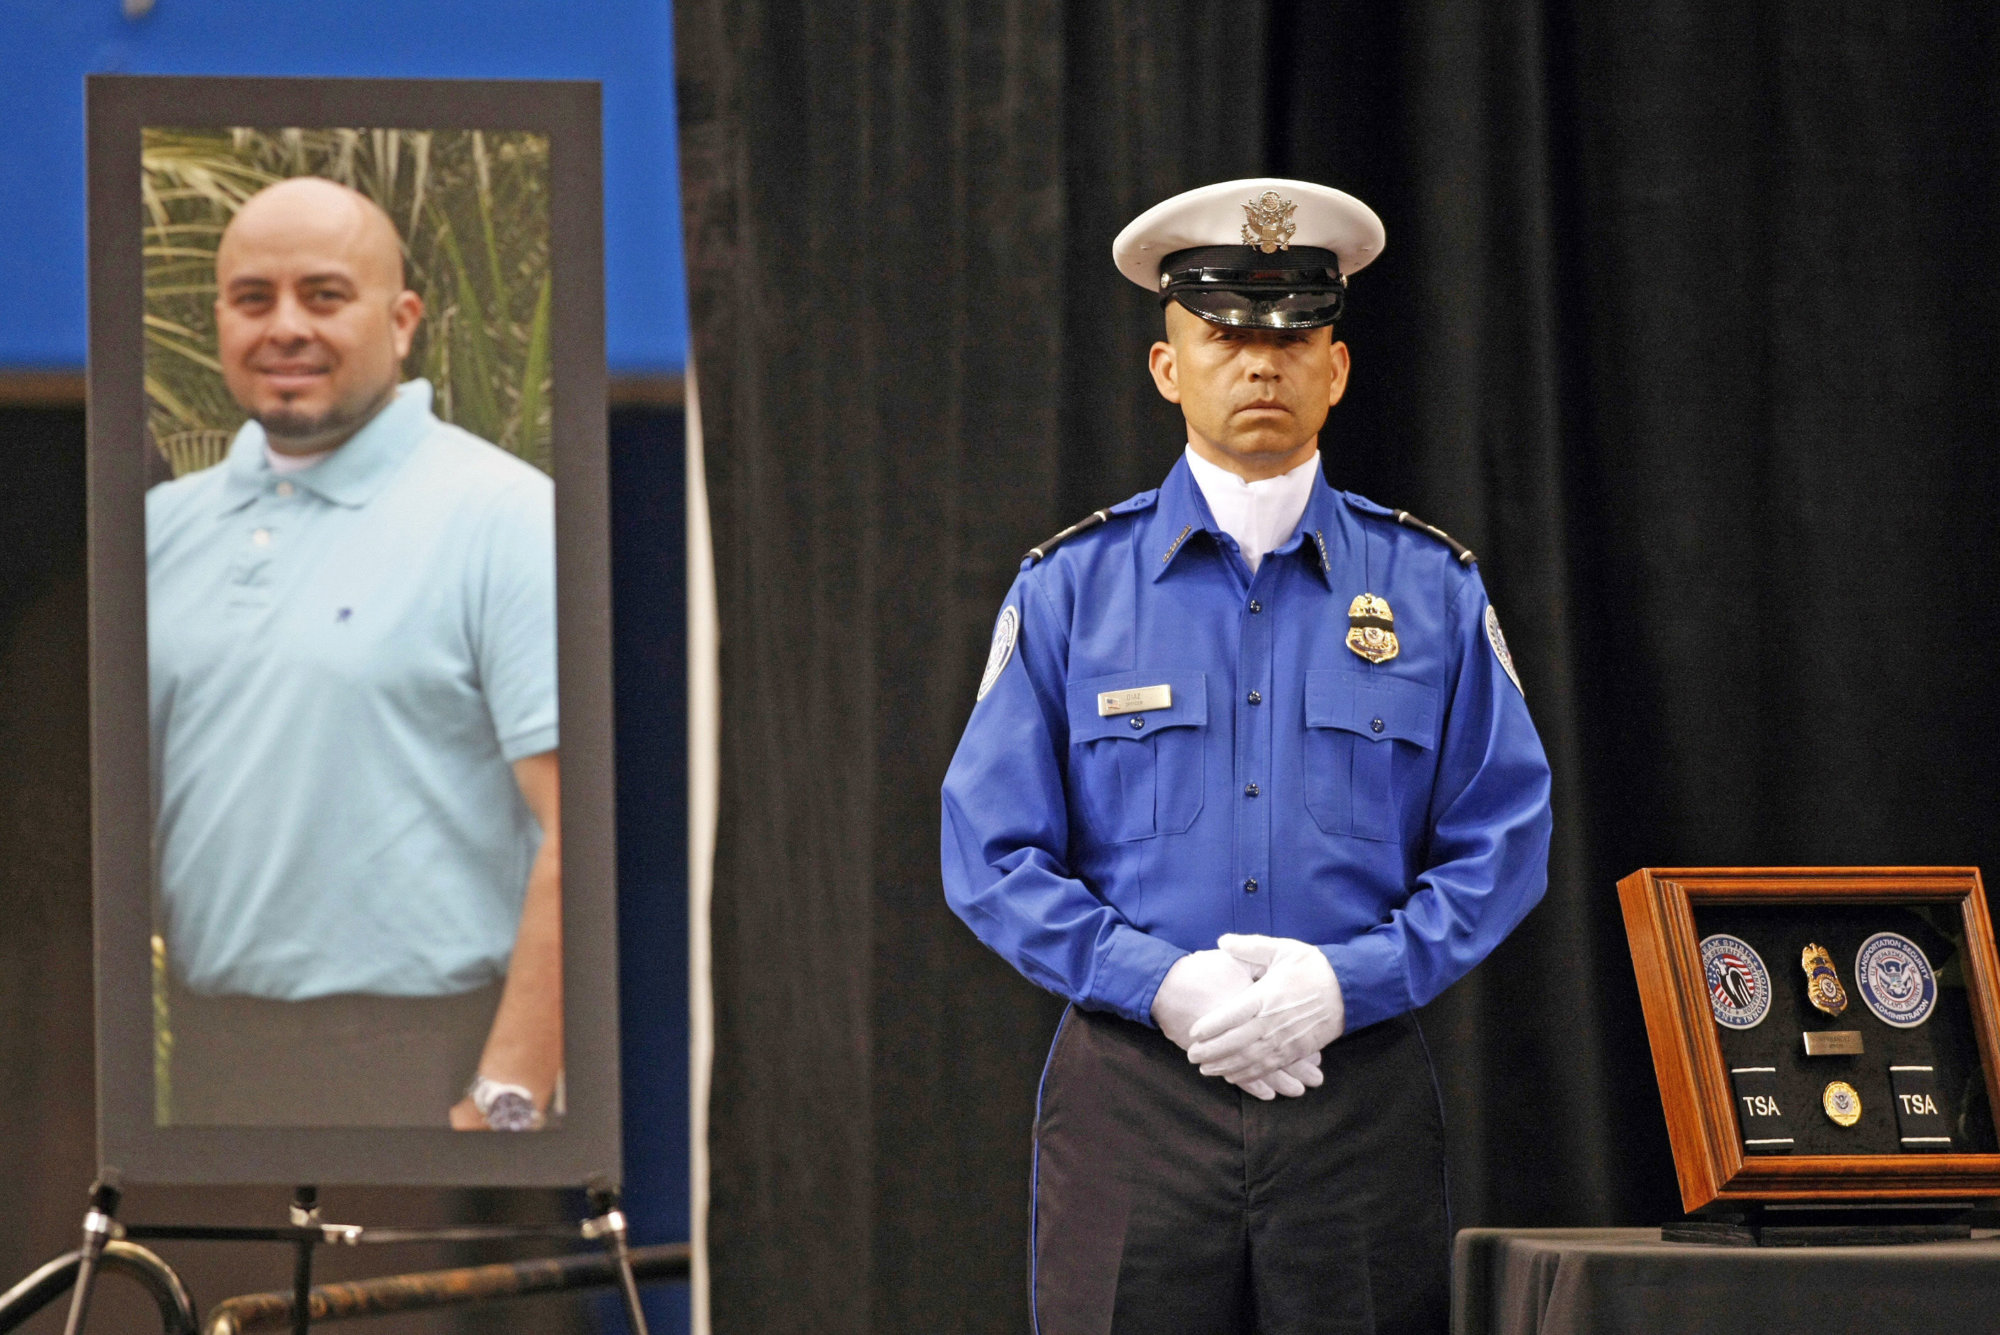 FILE - In this Nov. 12, 2013 file photo, a Transportation Security Administration officer stands in front of a portrait of slain TSA officer Gerardo Hernandez during his public memorial at the Los Angeles Sports Arena. Paul Ciancia, the gunman who killed the federal security officer at Los Angeles International Airport and wounded three other people during a 2013 rampage, faces sentencing for murder and other crimes. Ciancia is expected to be sentenced Monday, Nov. 7, 2016, to life in prison for shootings that terrorized passengers and employees at the nation's second-busiest airport and disrupted air travel nationwide. (Al Seib/Los Angeles Times via AP, Pool, File)